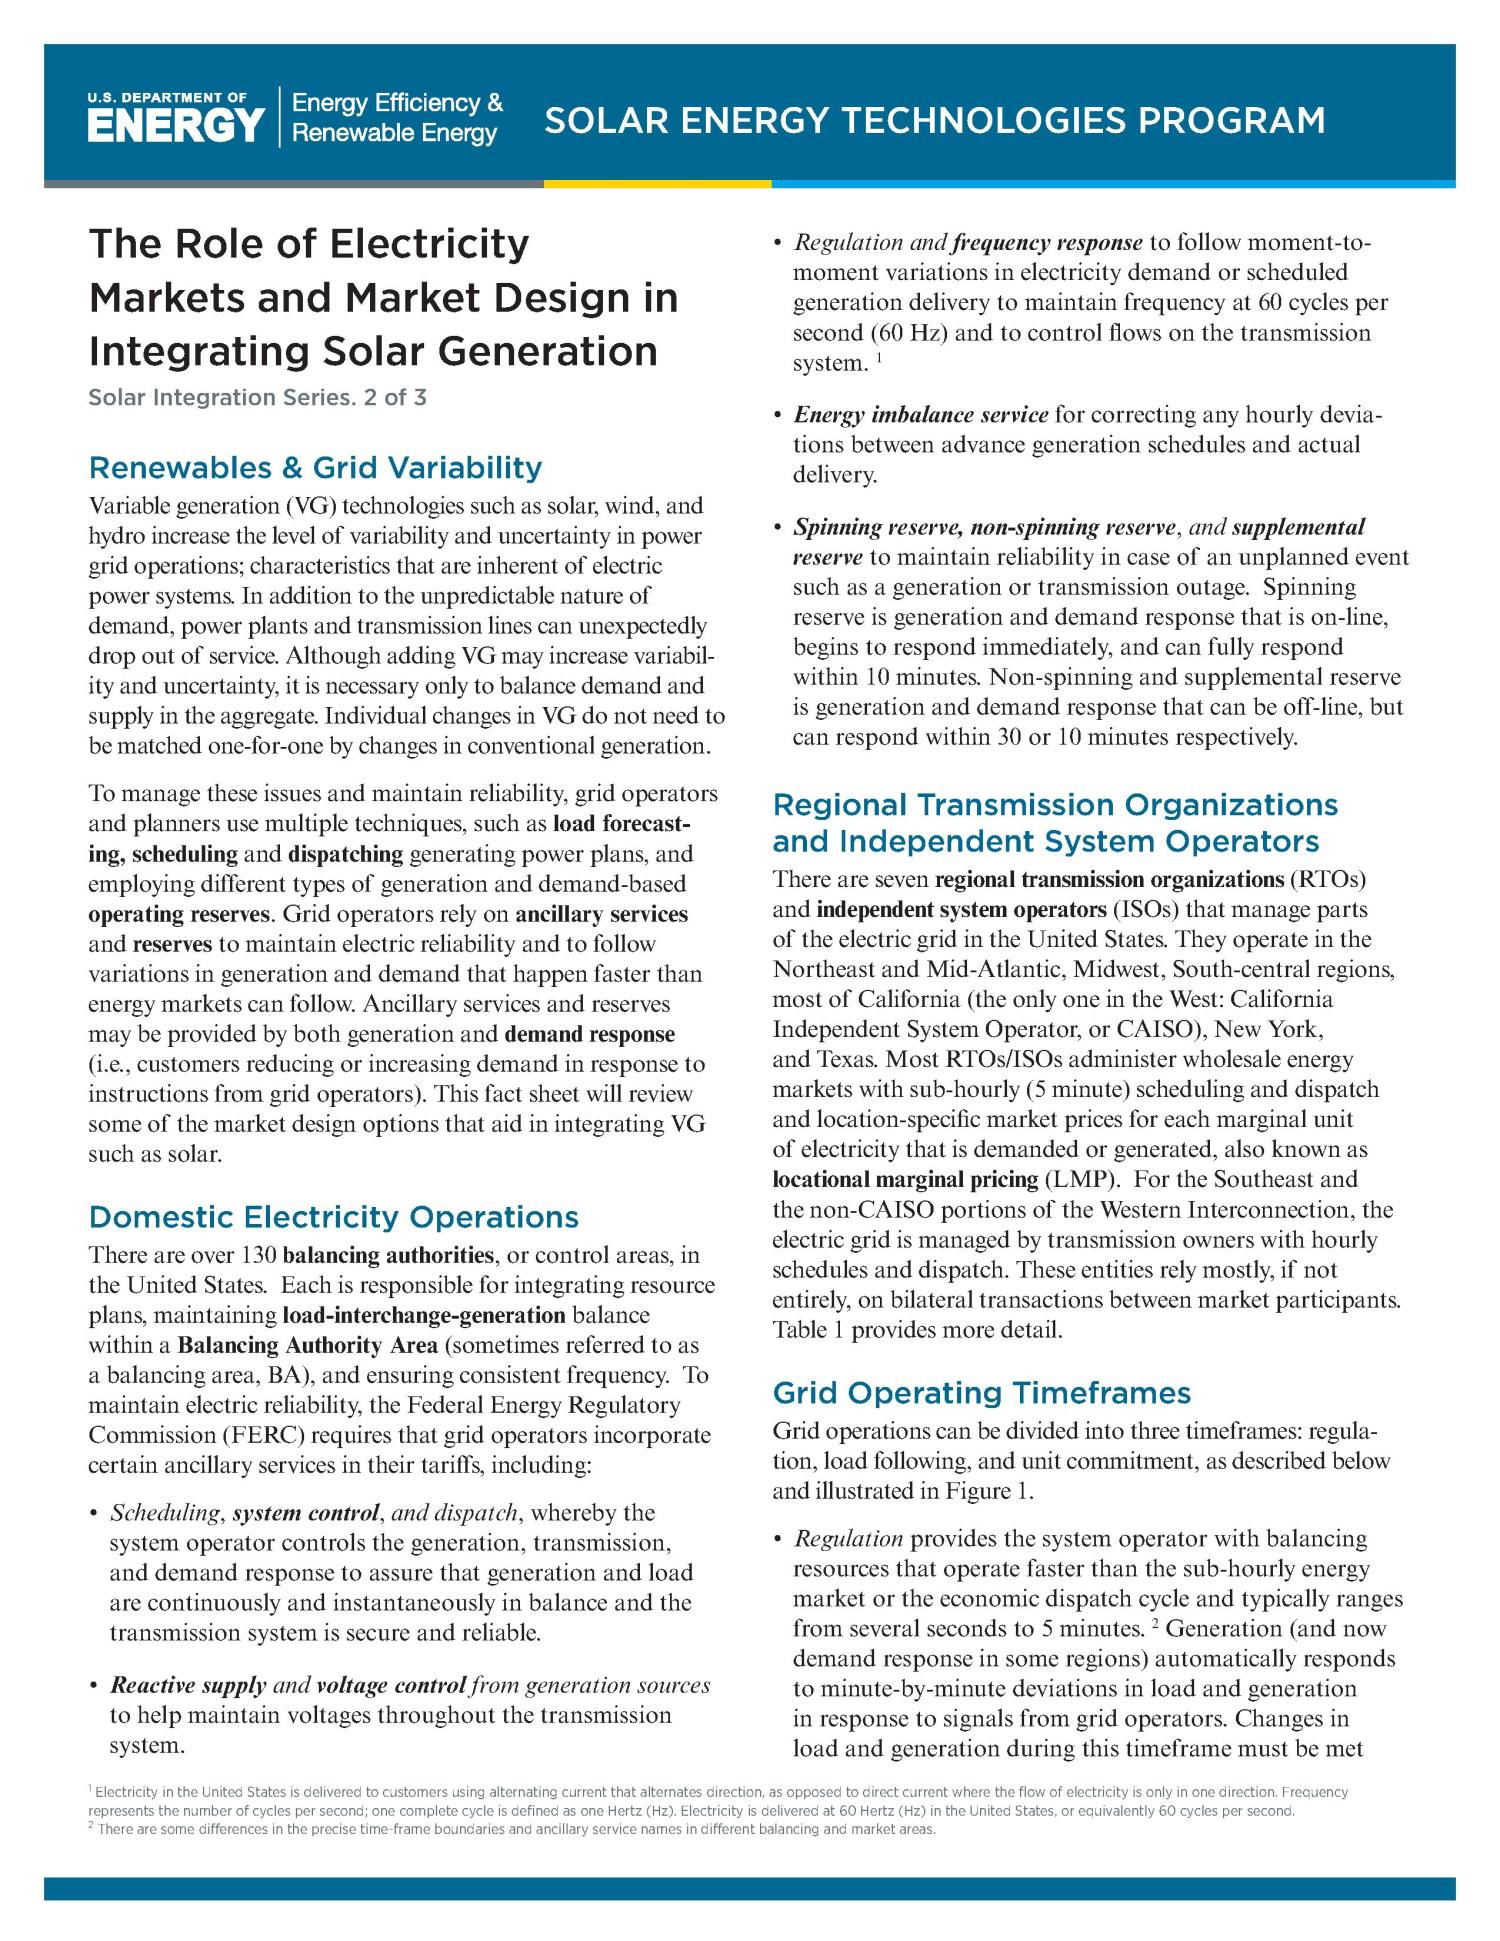 Role of Electricity Markets and Market Design in Integrating Solar ...